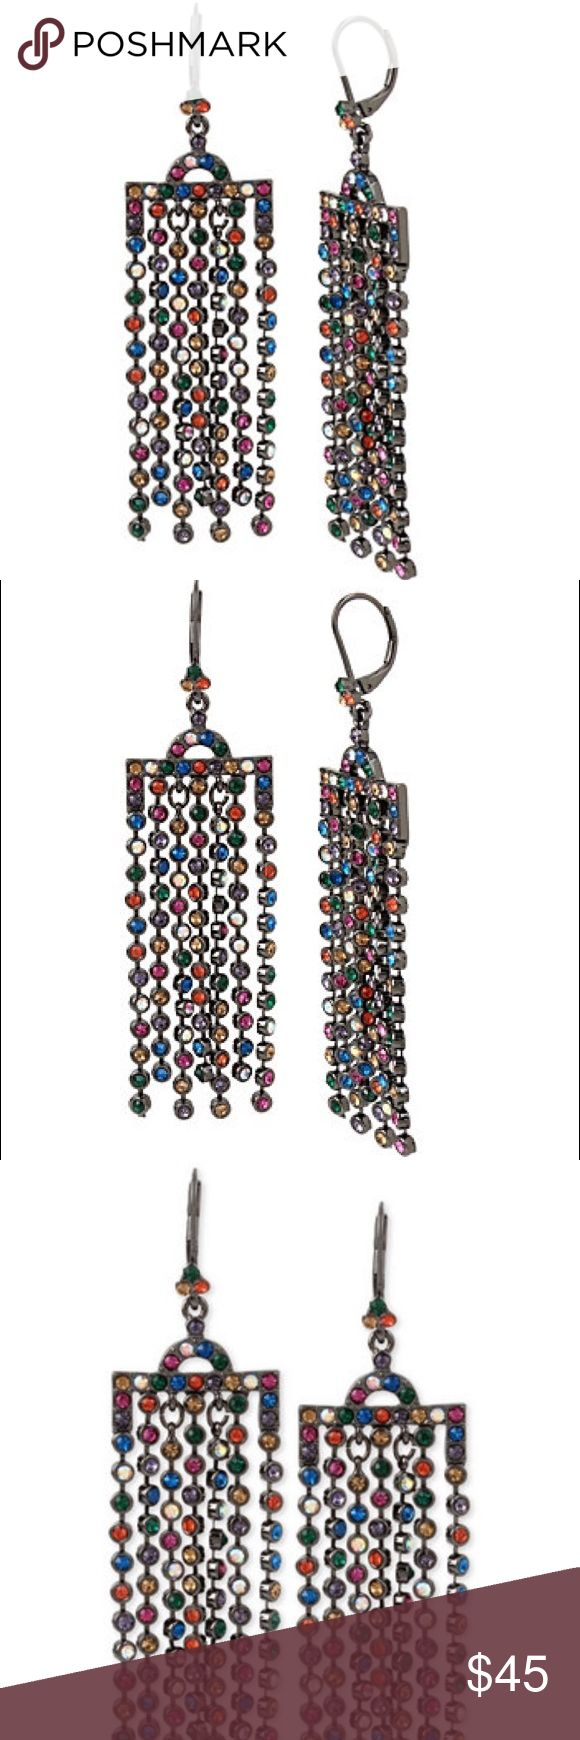 """Betsey Johnson earrings Betsey Johnson dangle chandelier earrings, multicolor stones, so pretty! New. The Art Deco inspired chandelier shape features swingy, rainbow fringe for a playful, vintage look. Hematite tone fringe chandelier with mixed multi colored stones     Euro wire     Bright hematite     Metal/glass     Length: 3.5""""     Width: 1"""" Betsey Johnson Jewelry Earrings"""